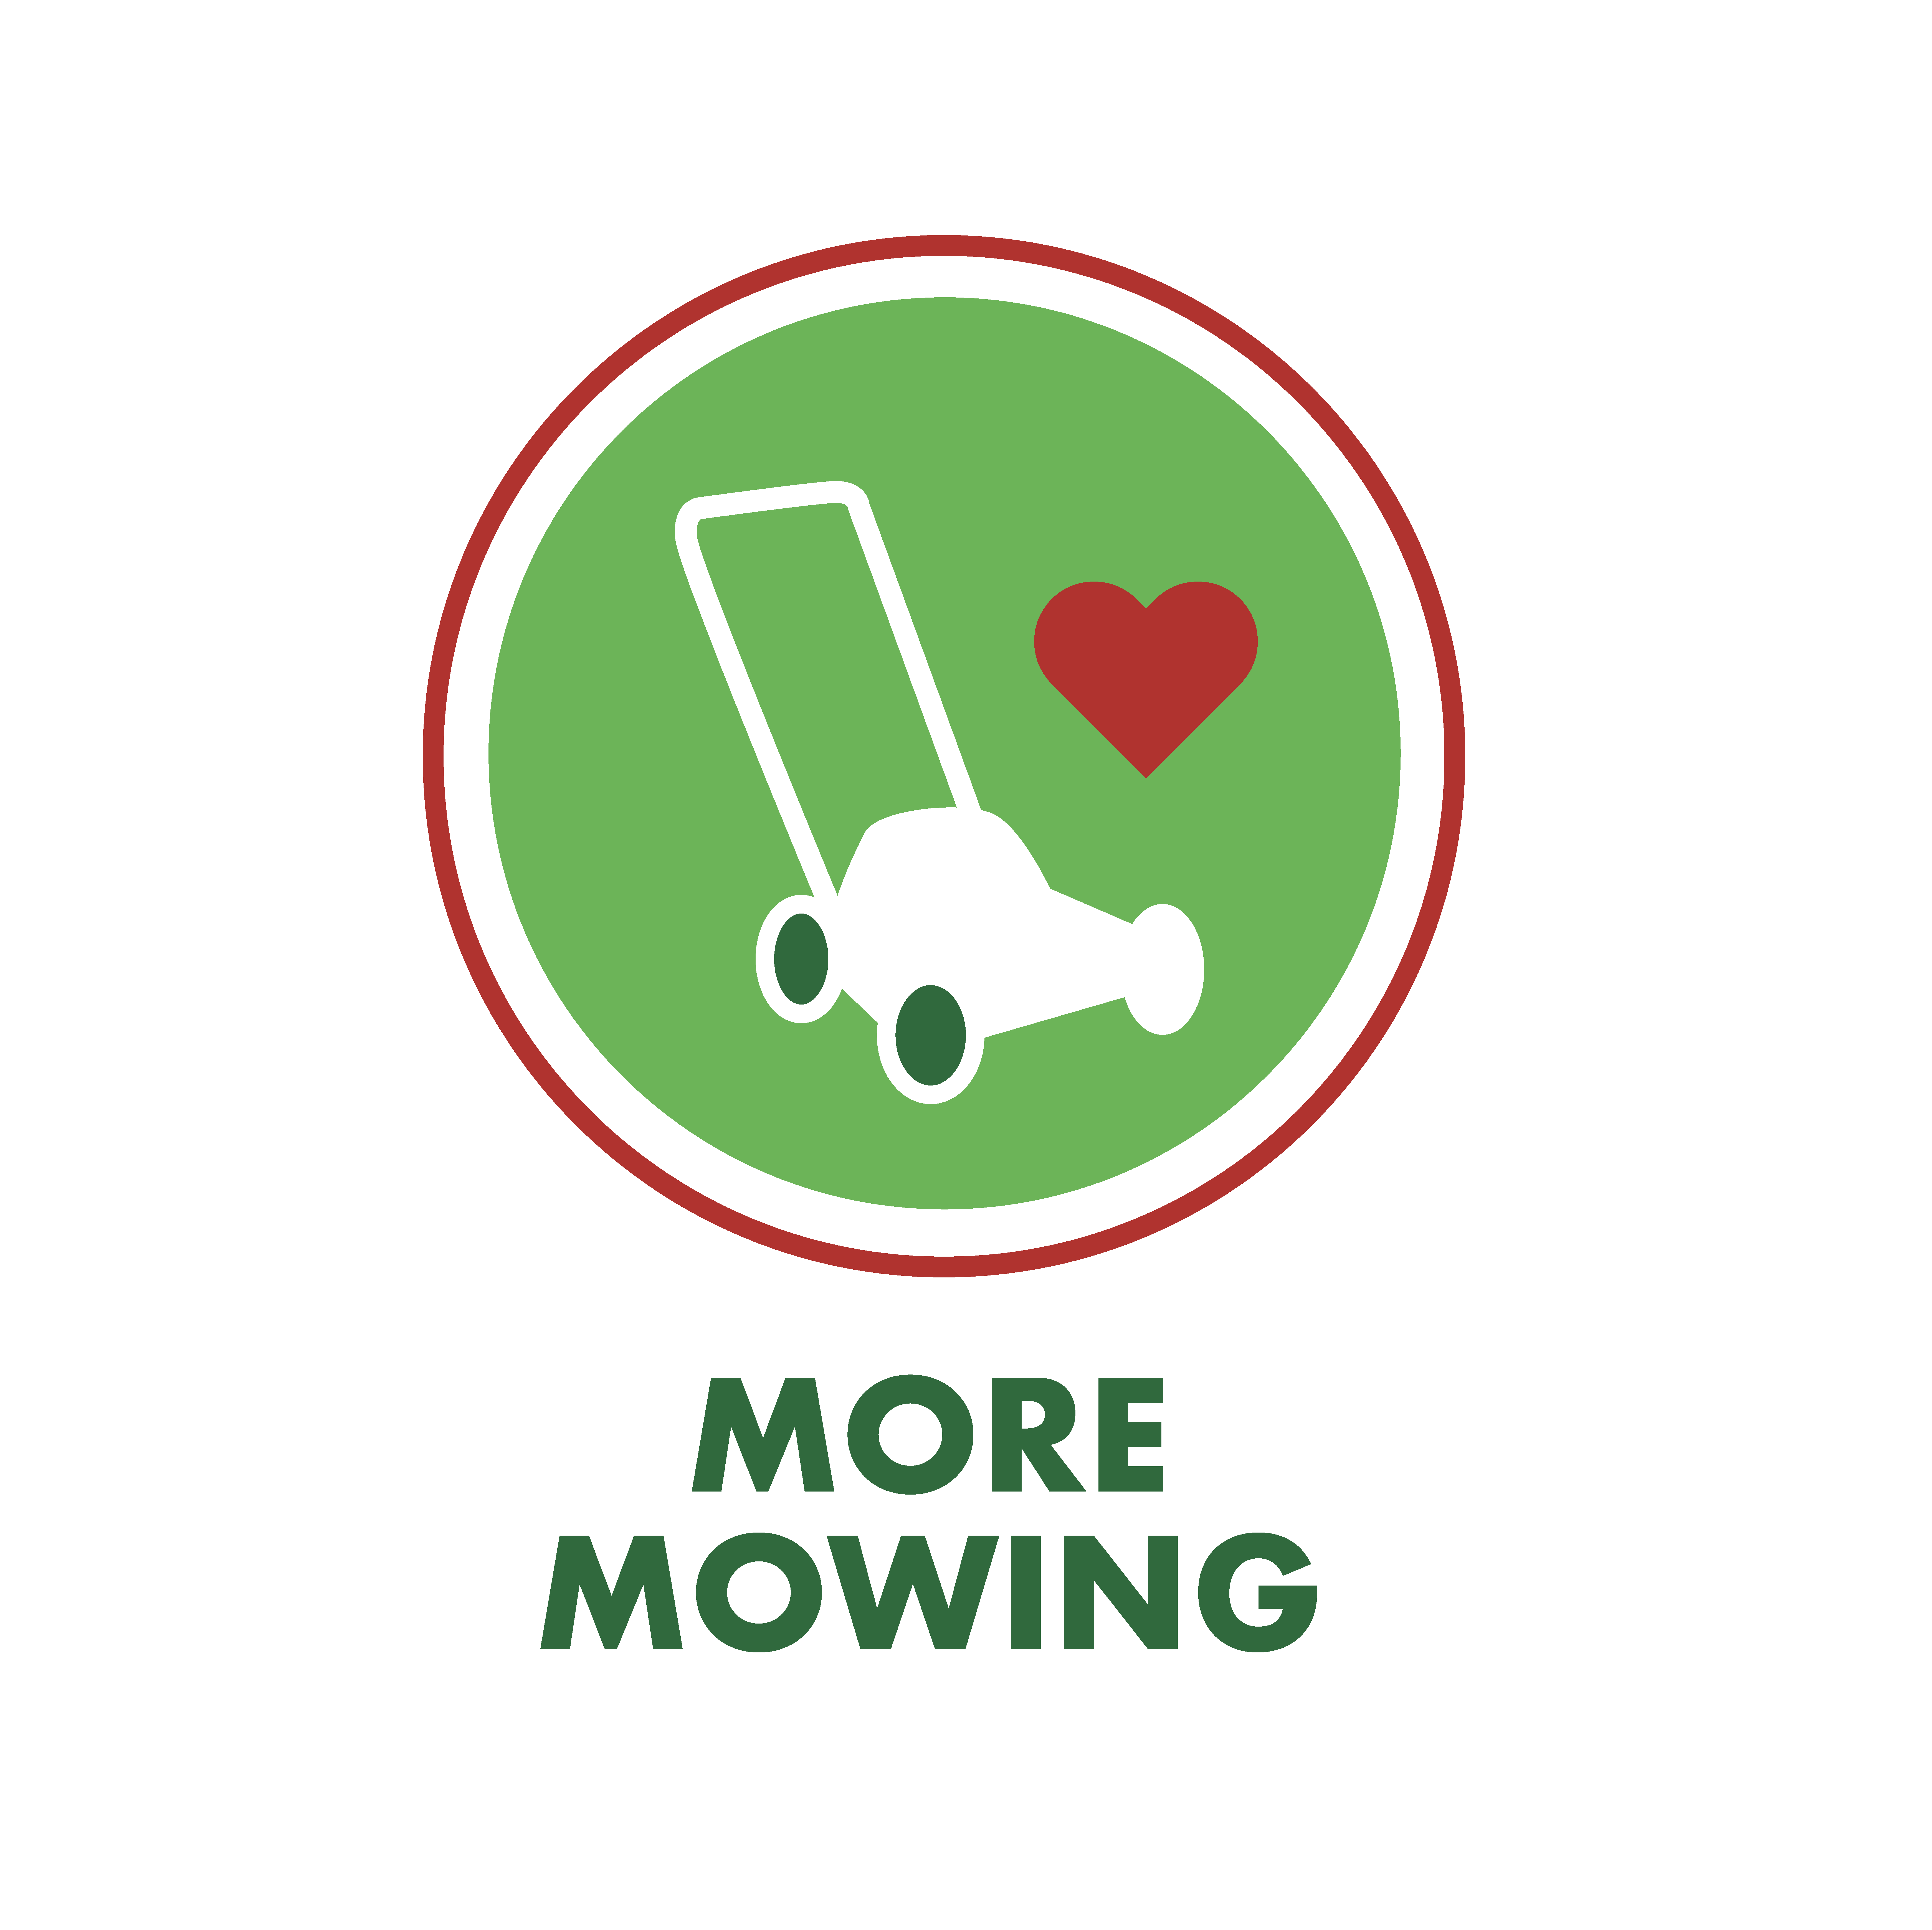 More Mowing advance turf icon